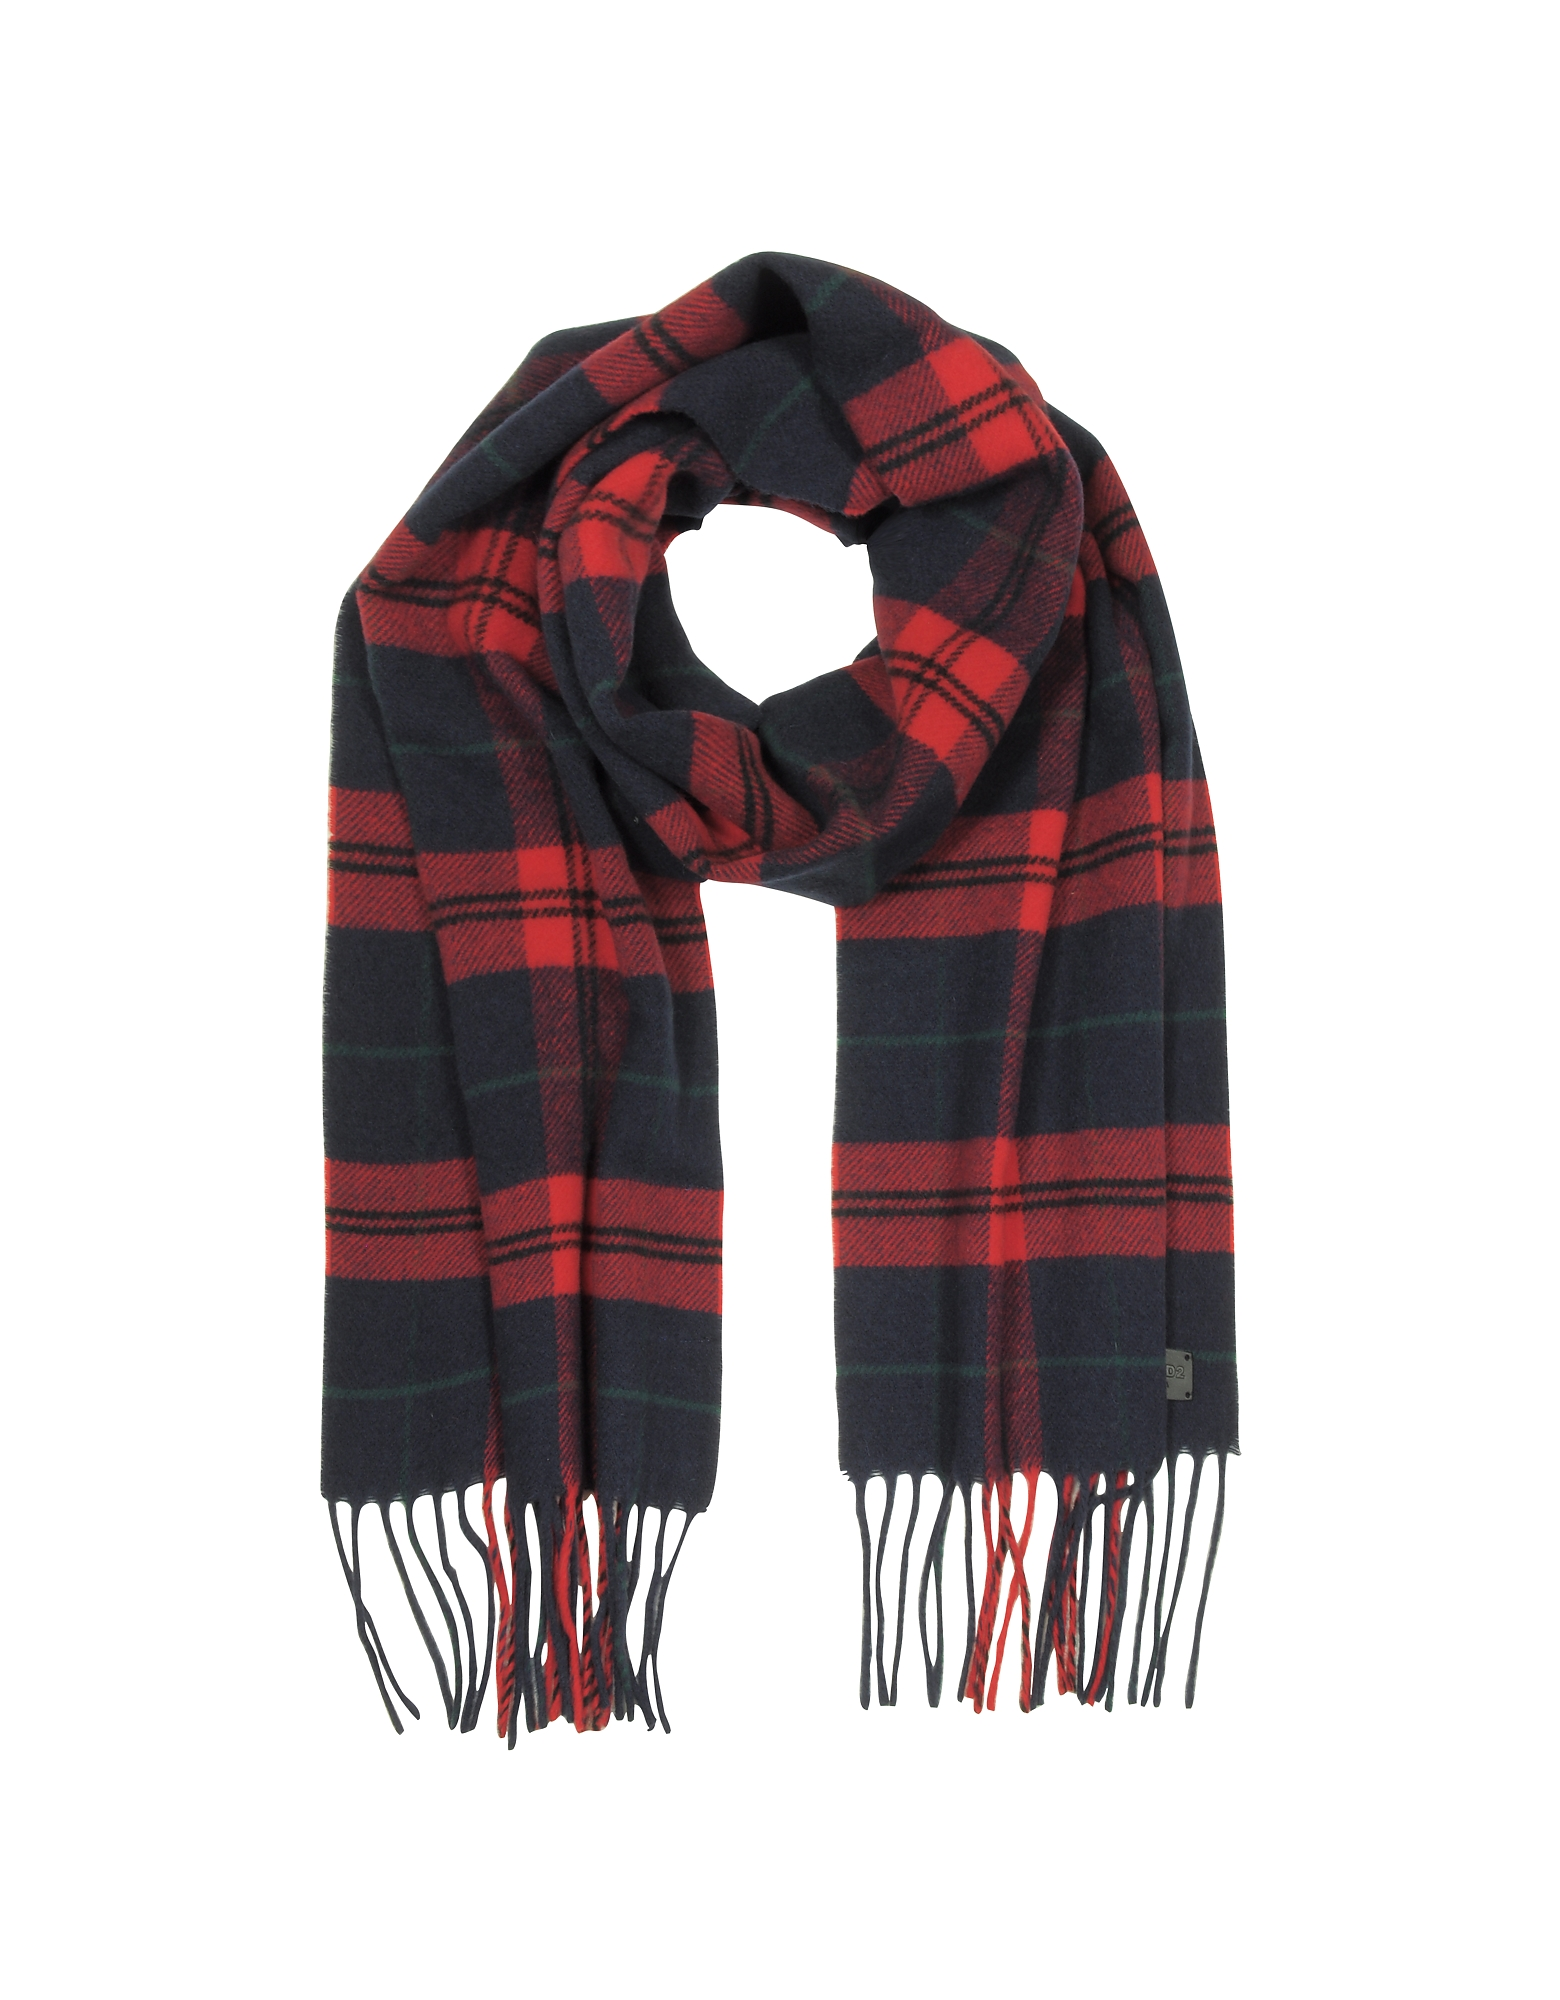 DSquared2 Men's Scarves, Red/Navy Blue Checked Wool and Cashmere Men's Scarf w/Fringes